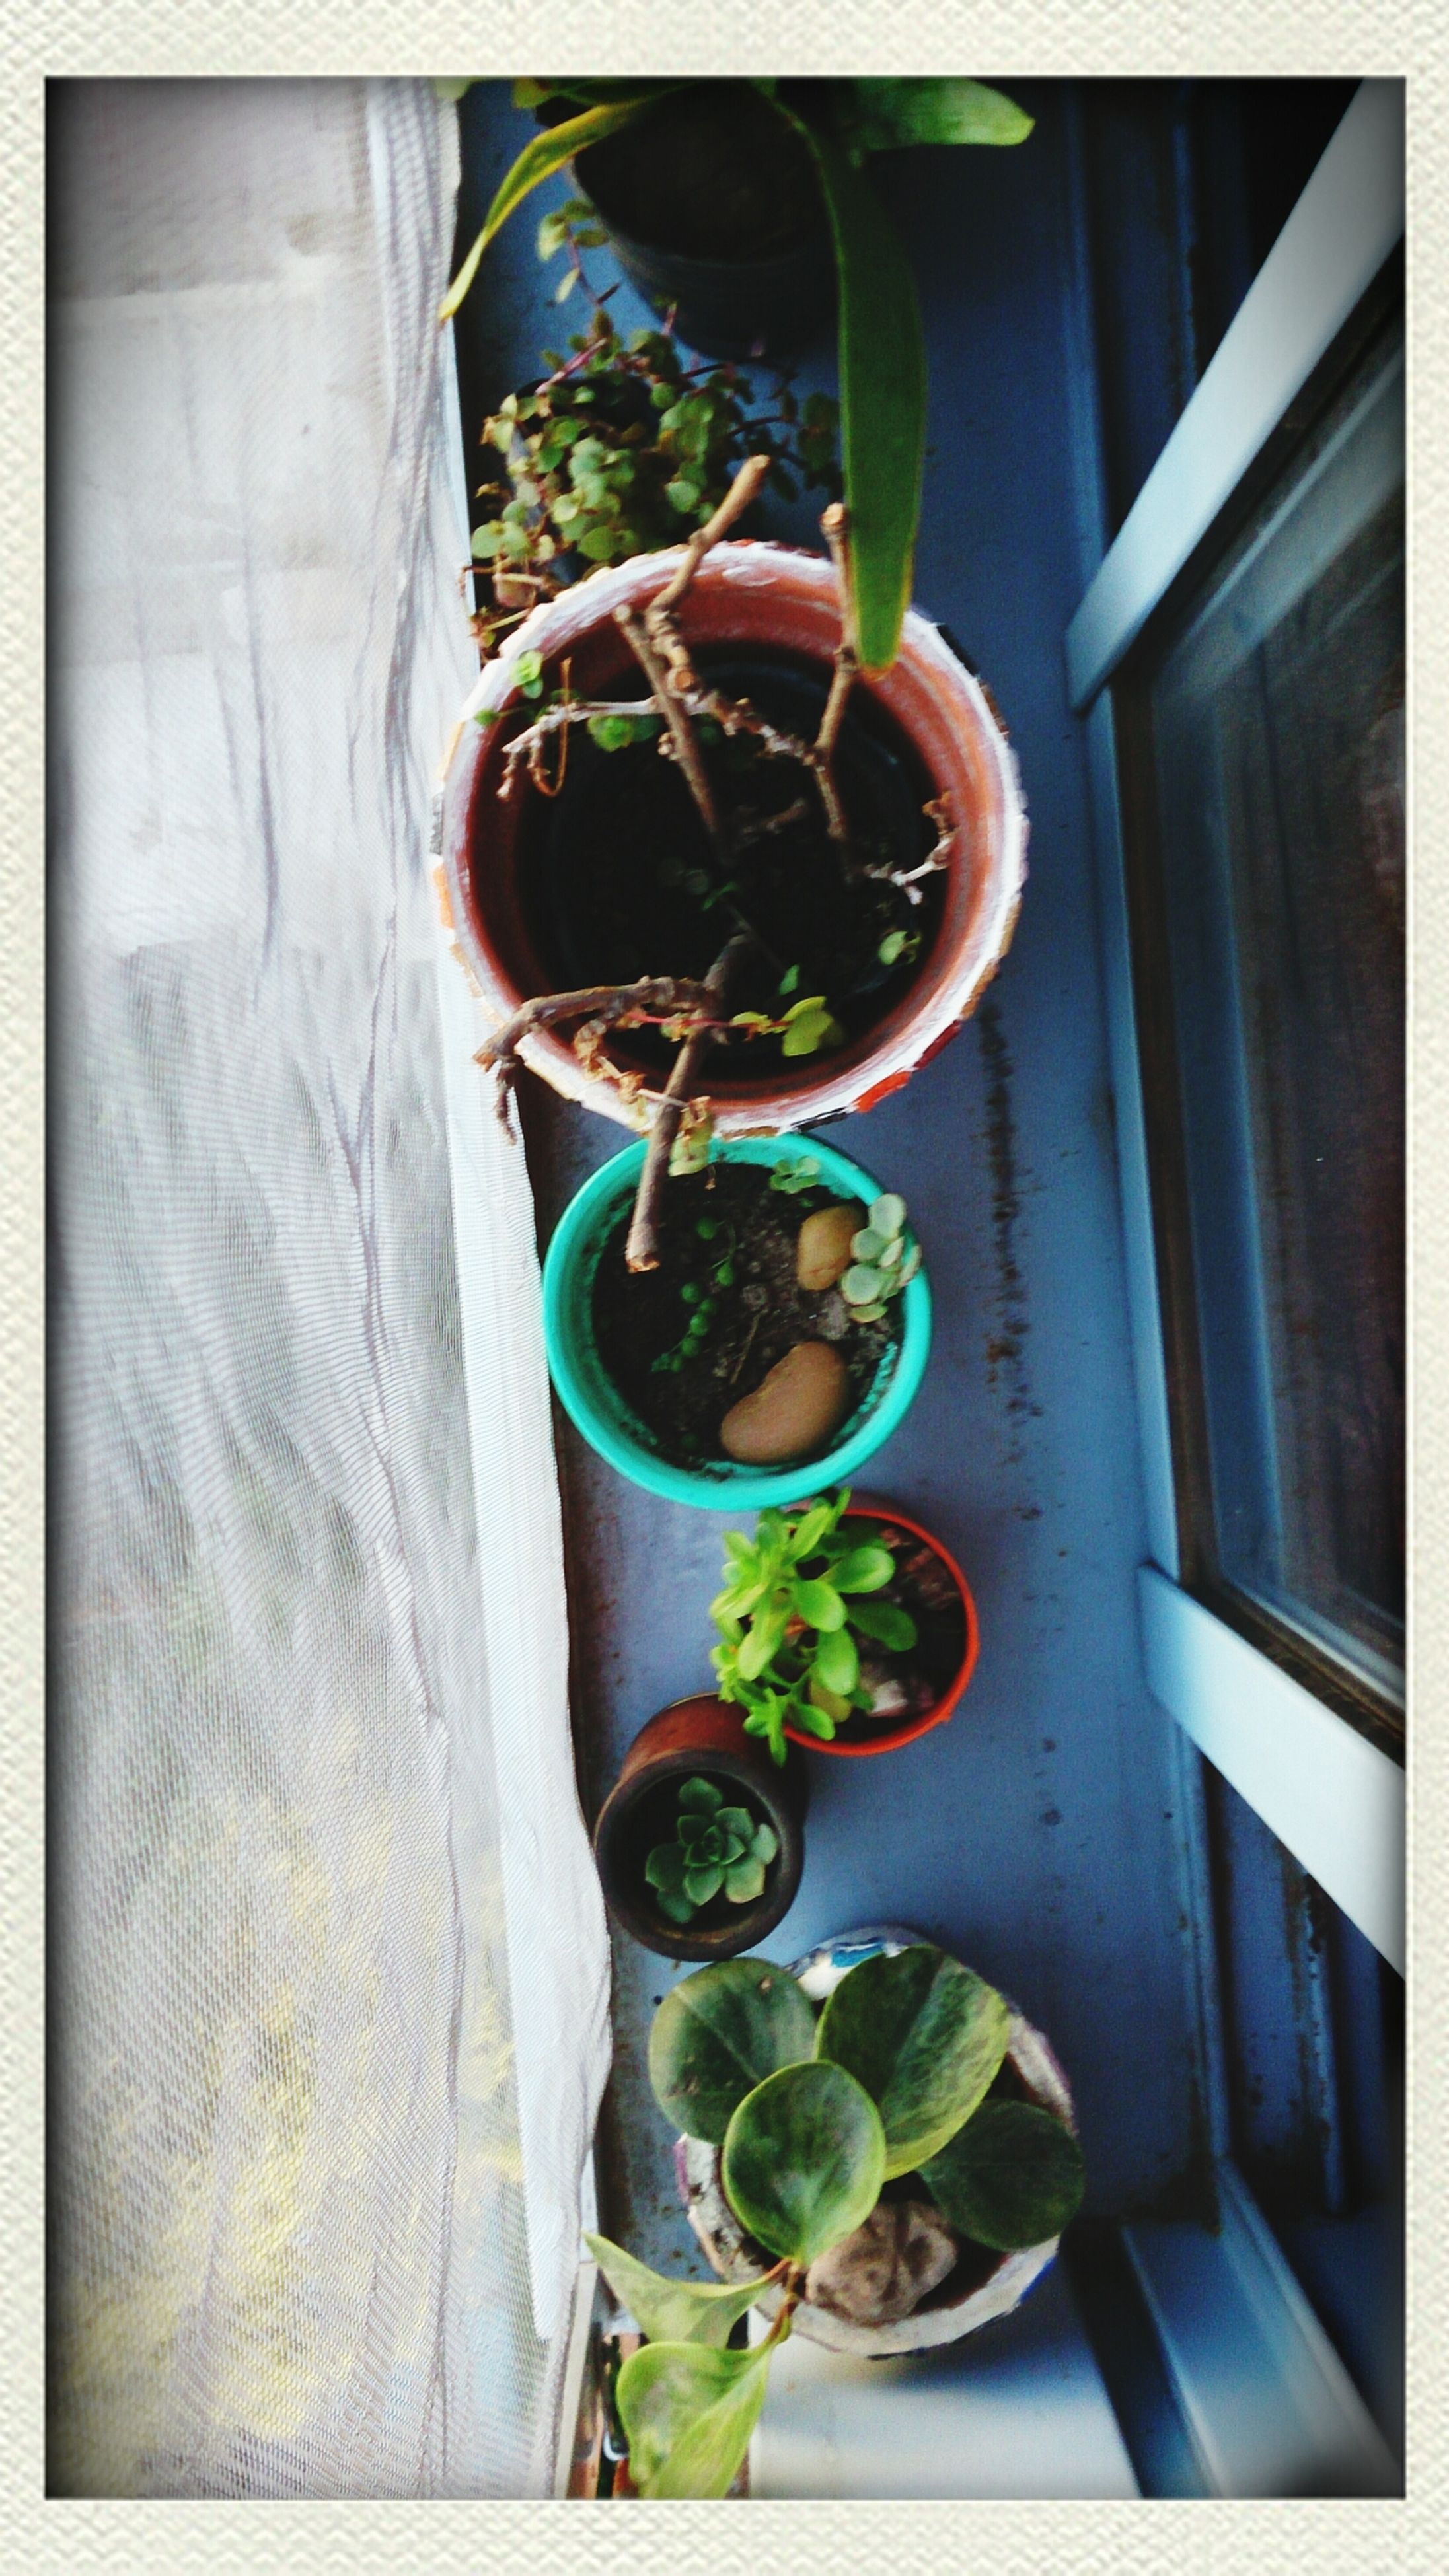 indoors, potted plant, freshness, still life, table, food and drink, healthy eating, food, leaf, home interior, vegetable, green color, close-up, plant, auto post production filter, no people, transfer print, high angle view, wood - material, green